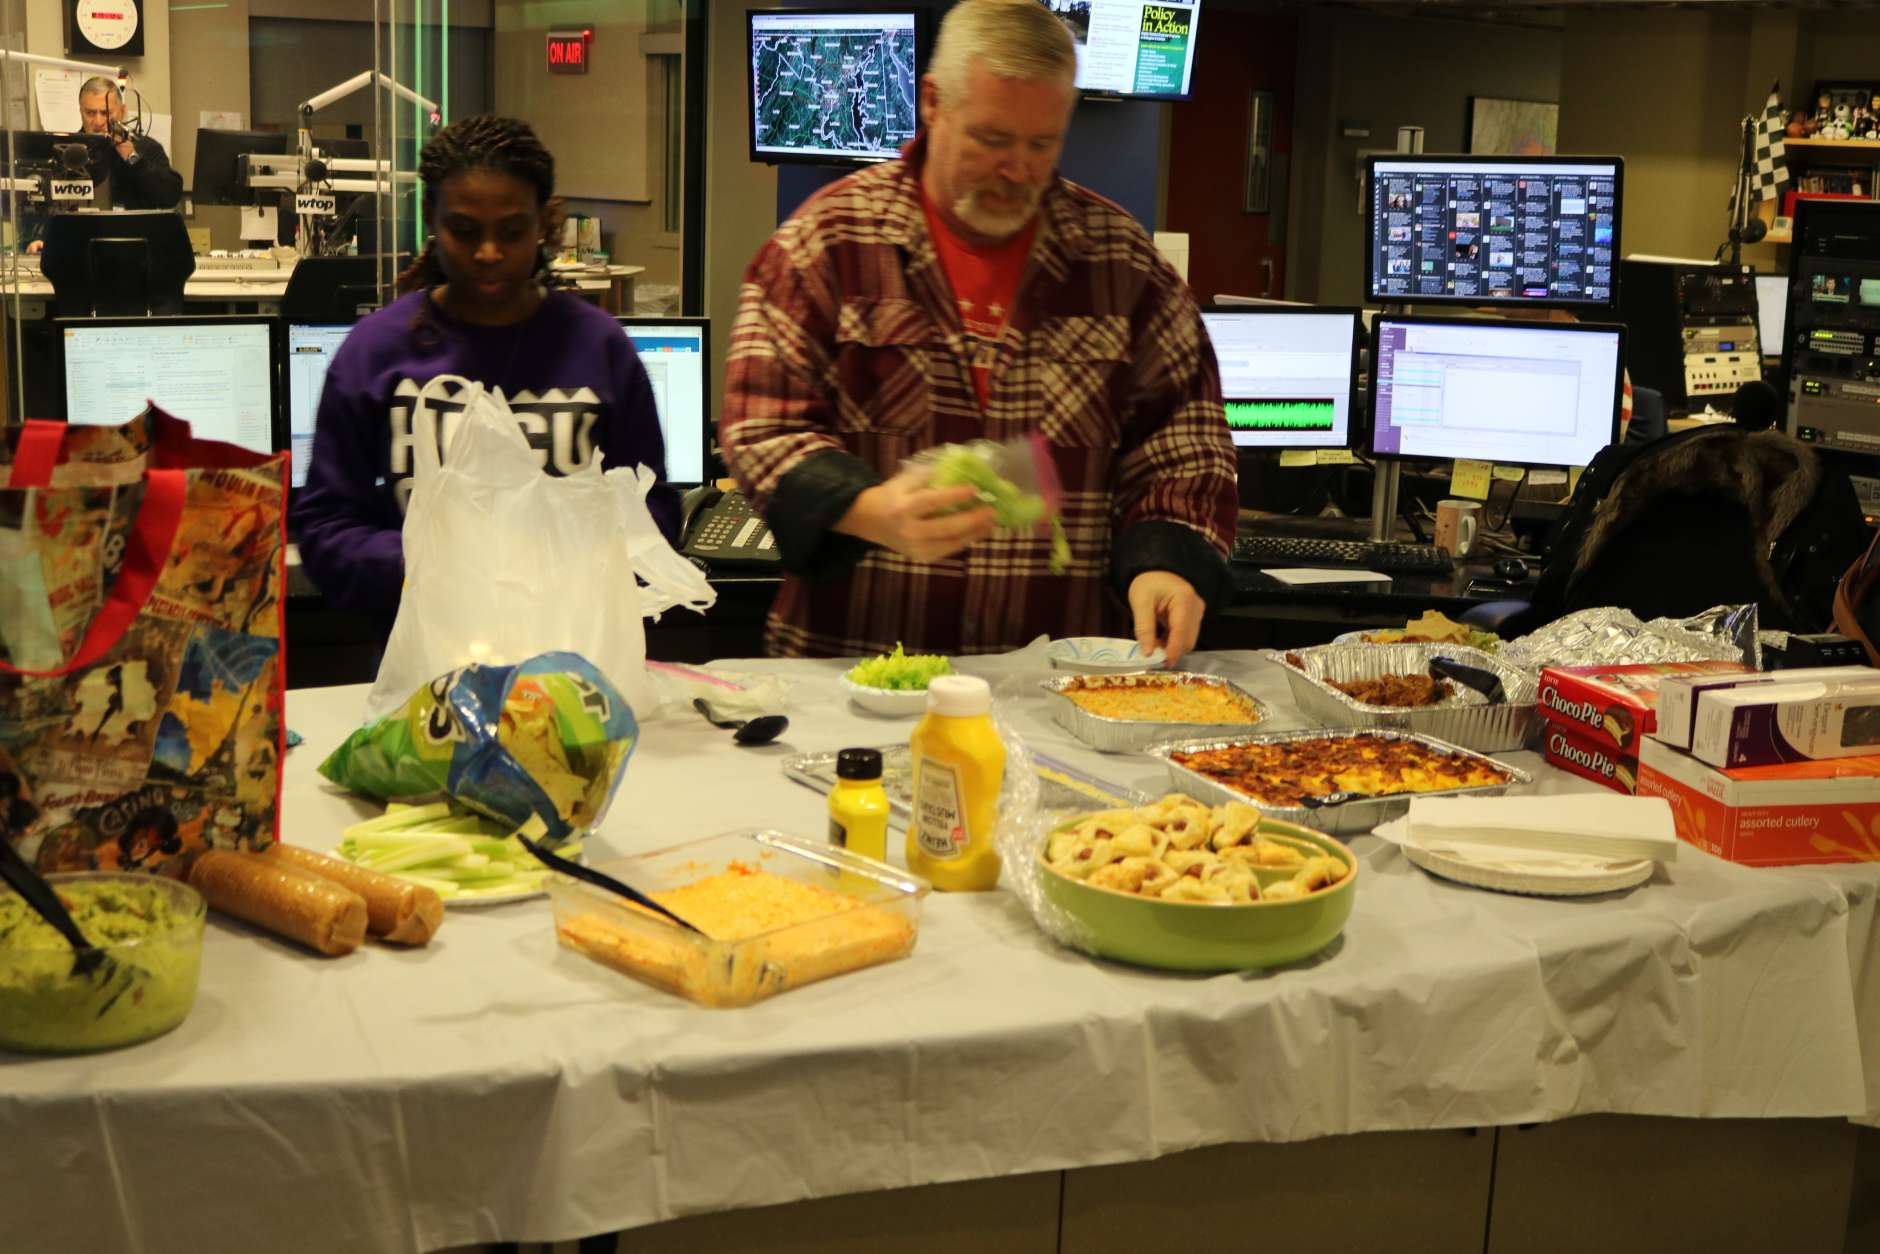 WTOP's Jack Taylor samples snacks from the table. (WTOP/Hanna Choi)